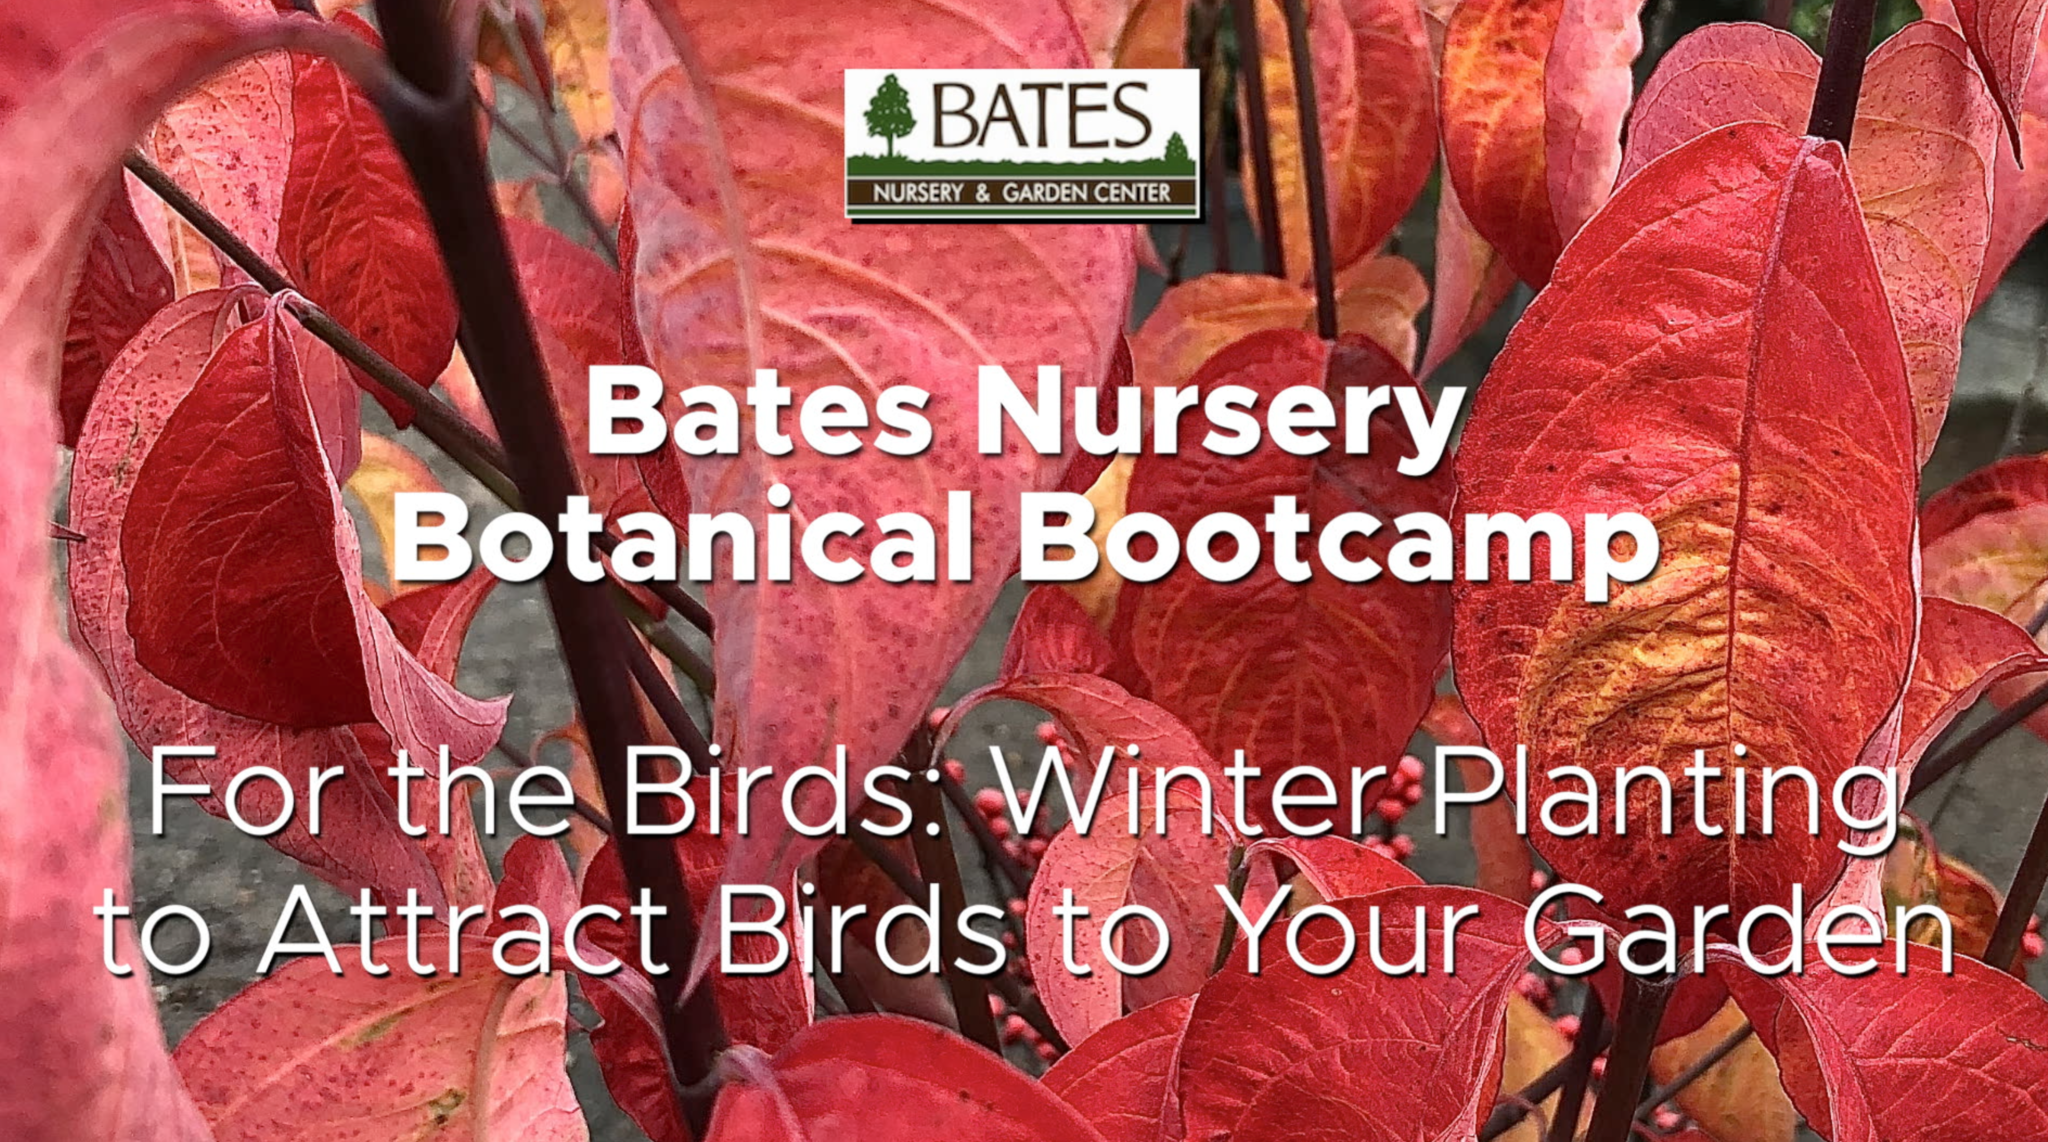 For the Birds: Winter Planting to Attract Birds to Your Garden